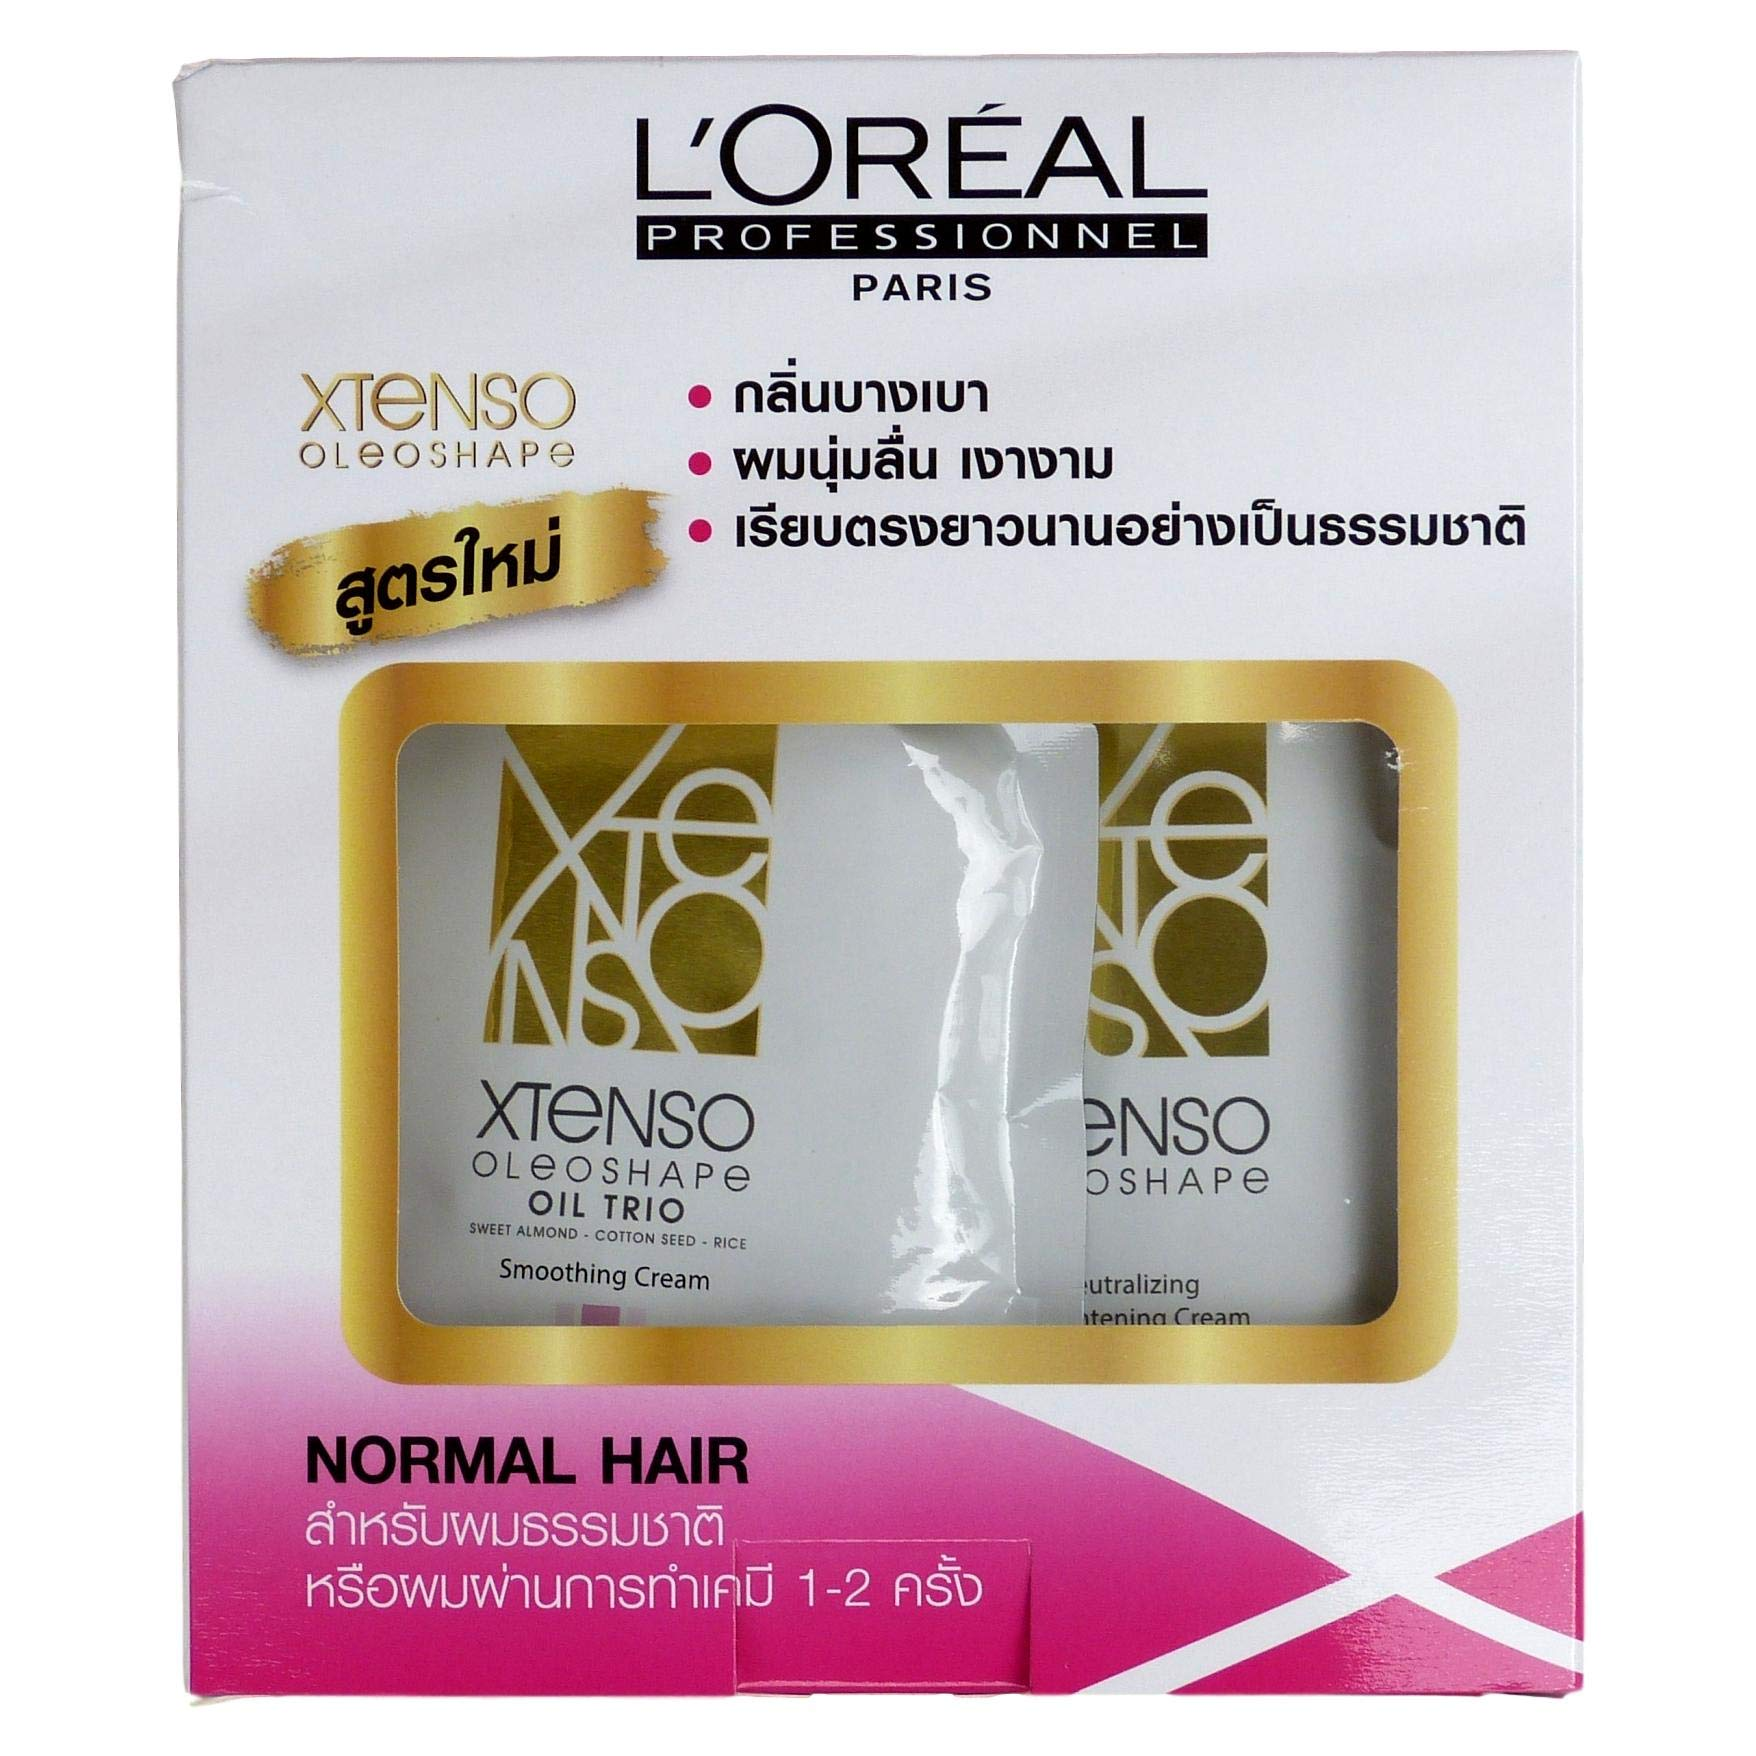 L'OREAL X-tenso Straightener Cream For Natural/Normal Hair